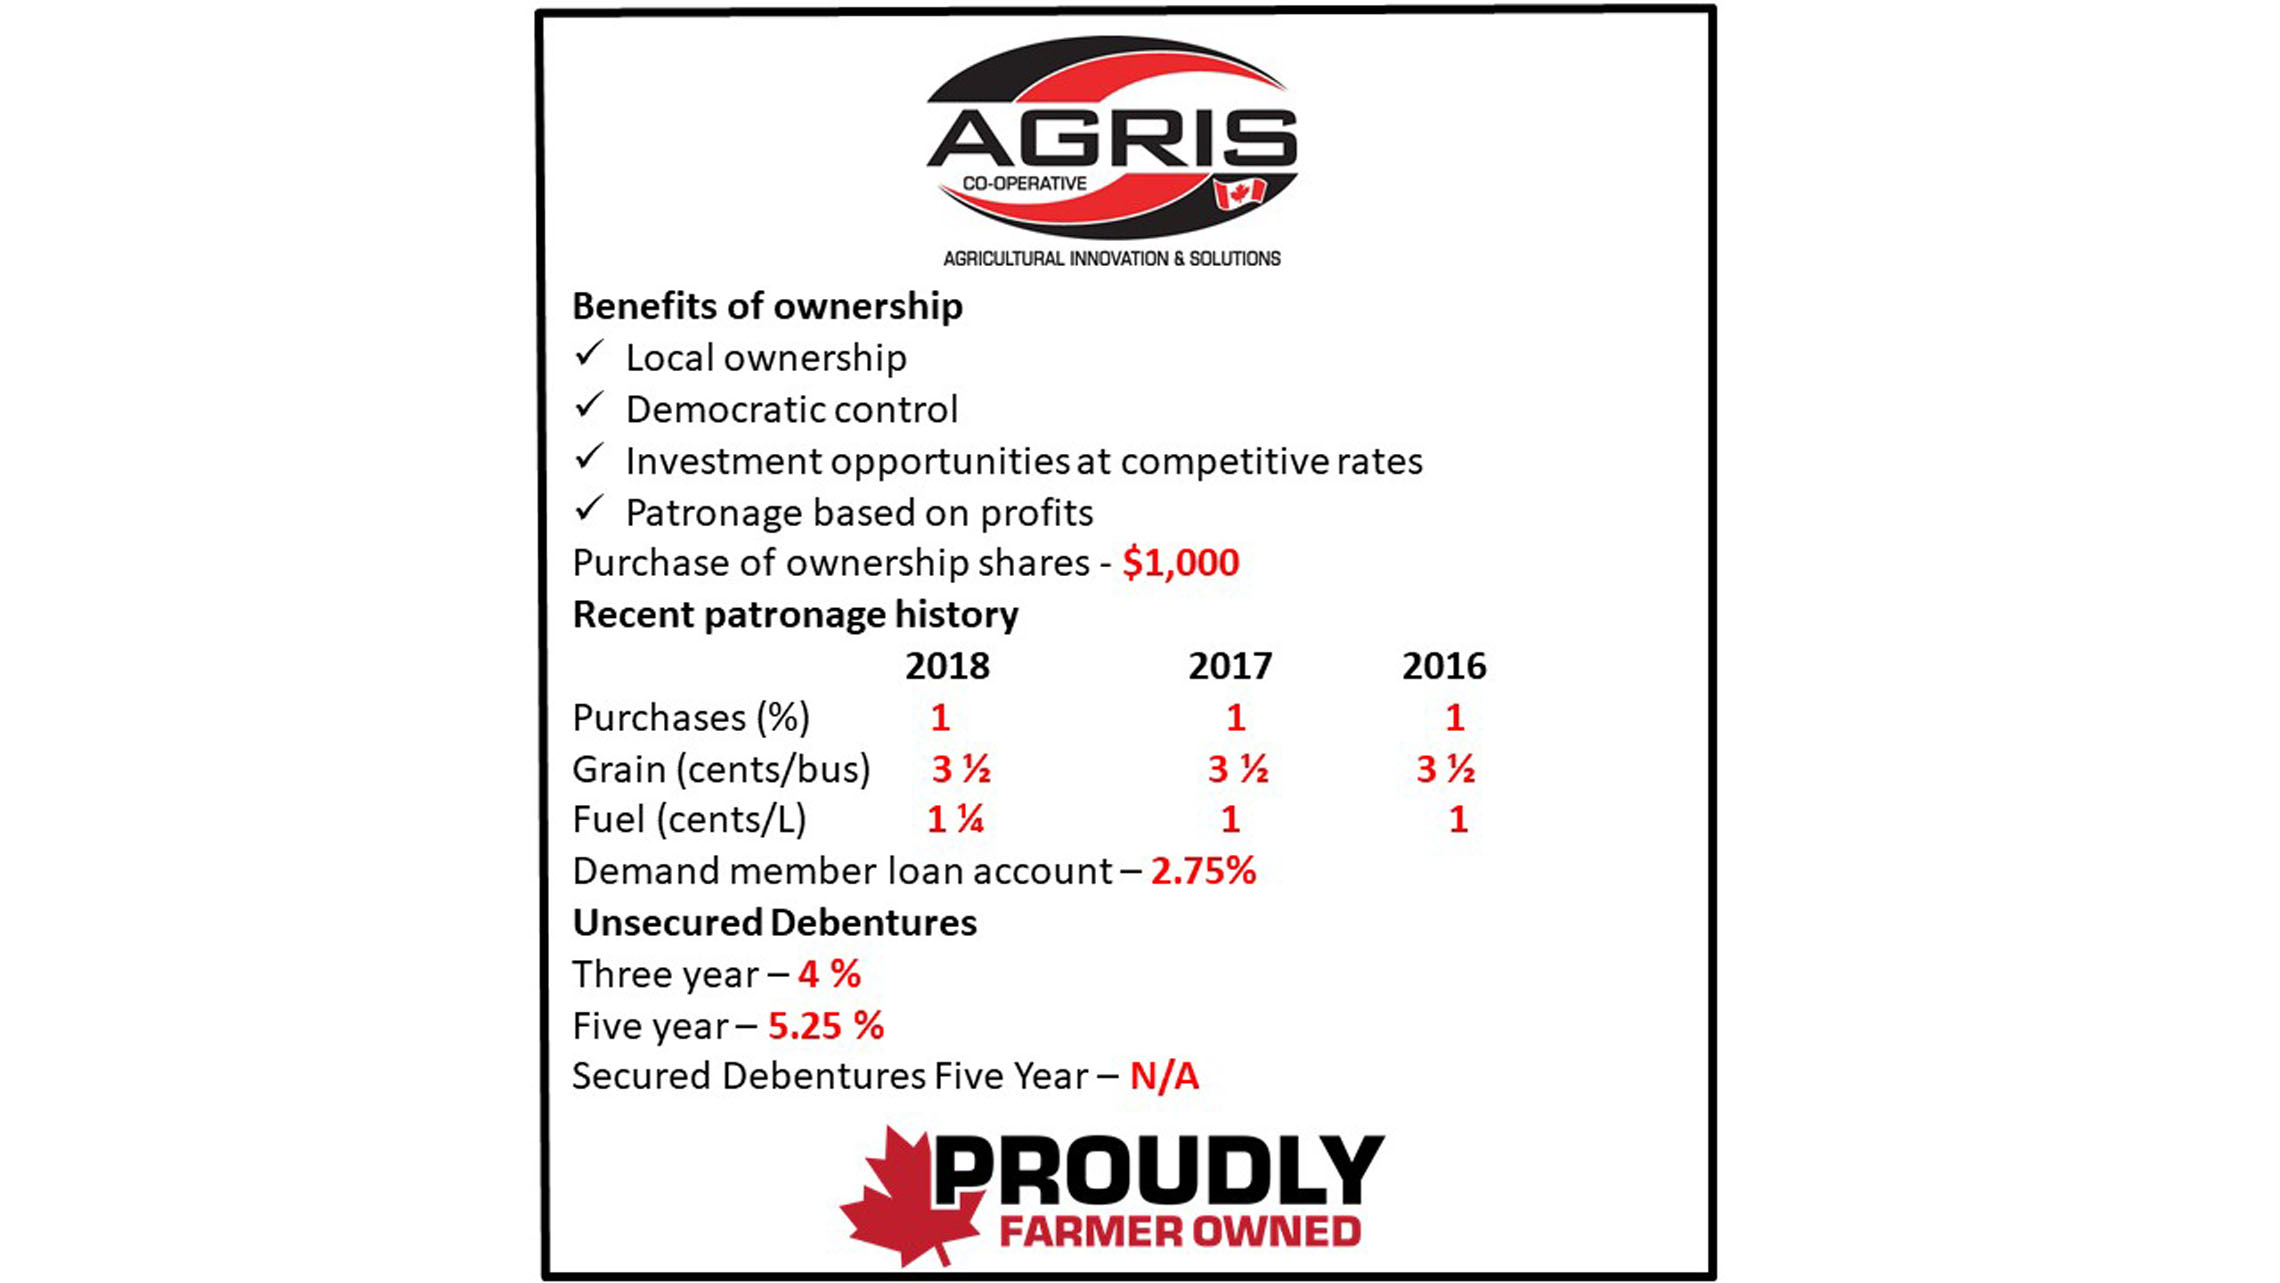 AGRIS Membership Sign Jan 12, 2019REV3